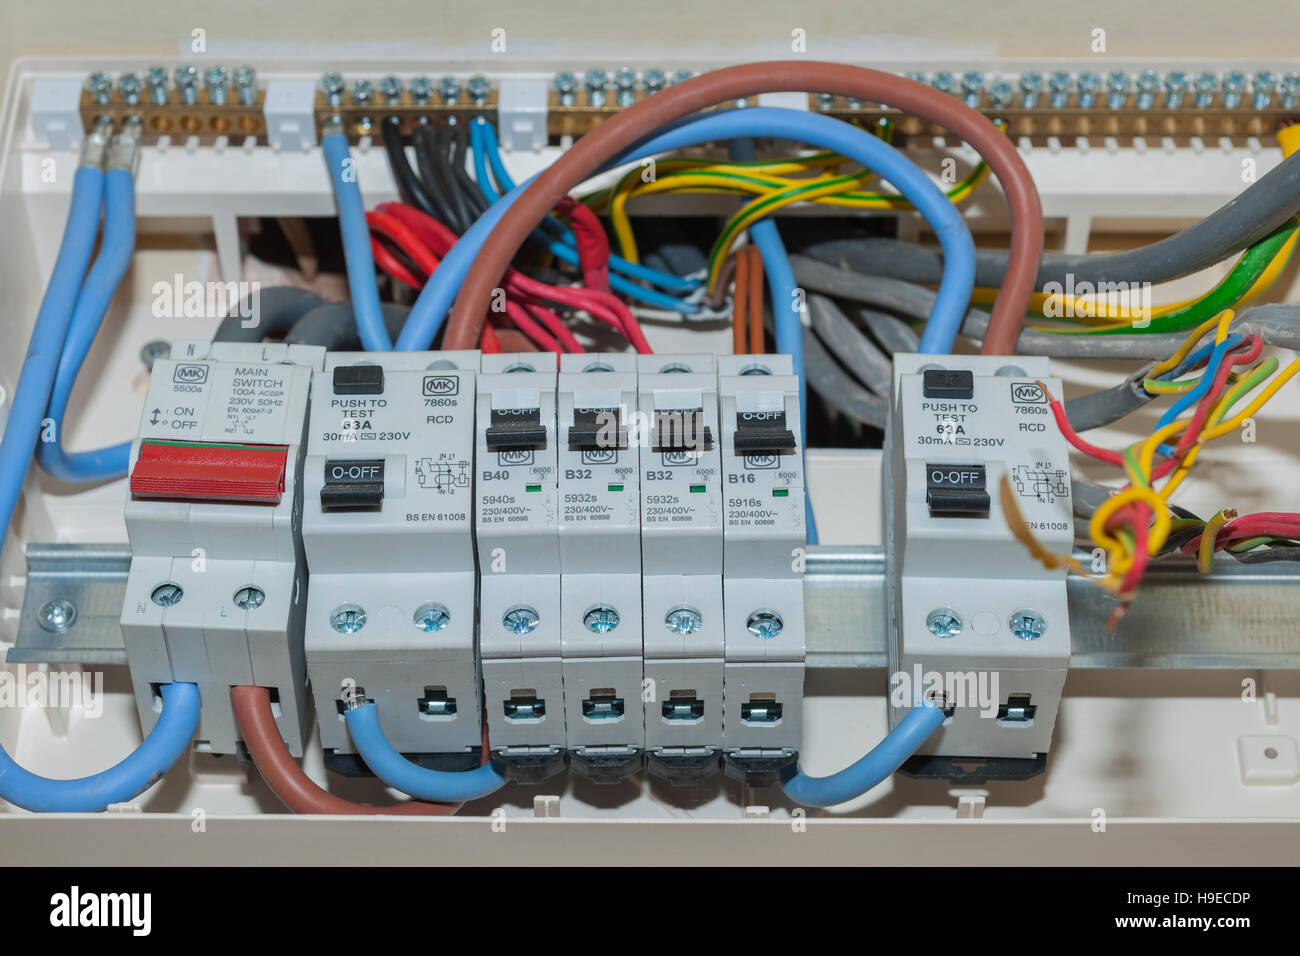 Electric Fuse Box Stock Photos Images Alamy Adapter Power Supply A Rcd In The Uk Image